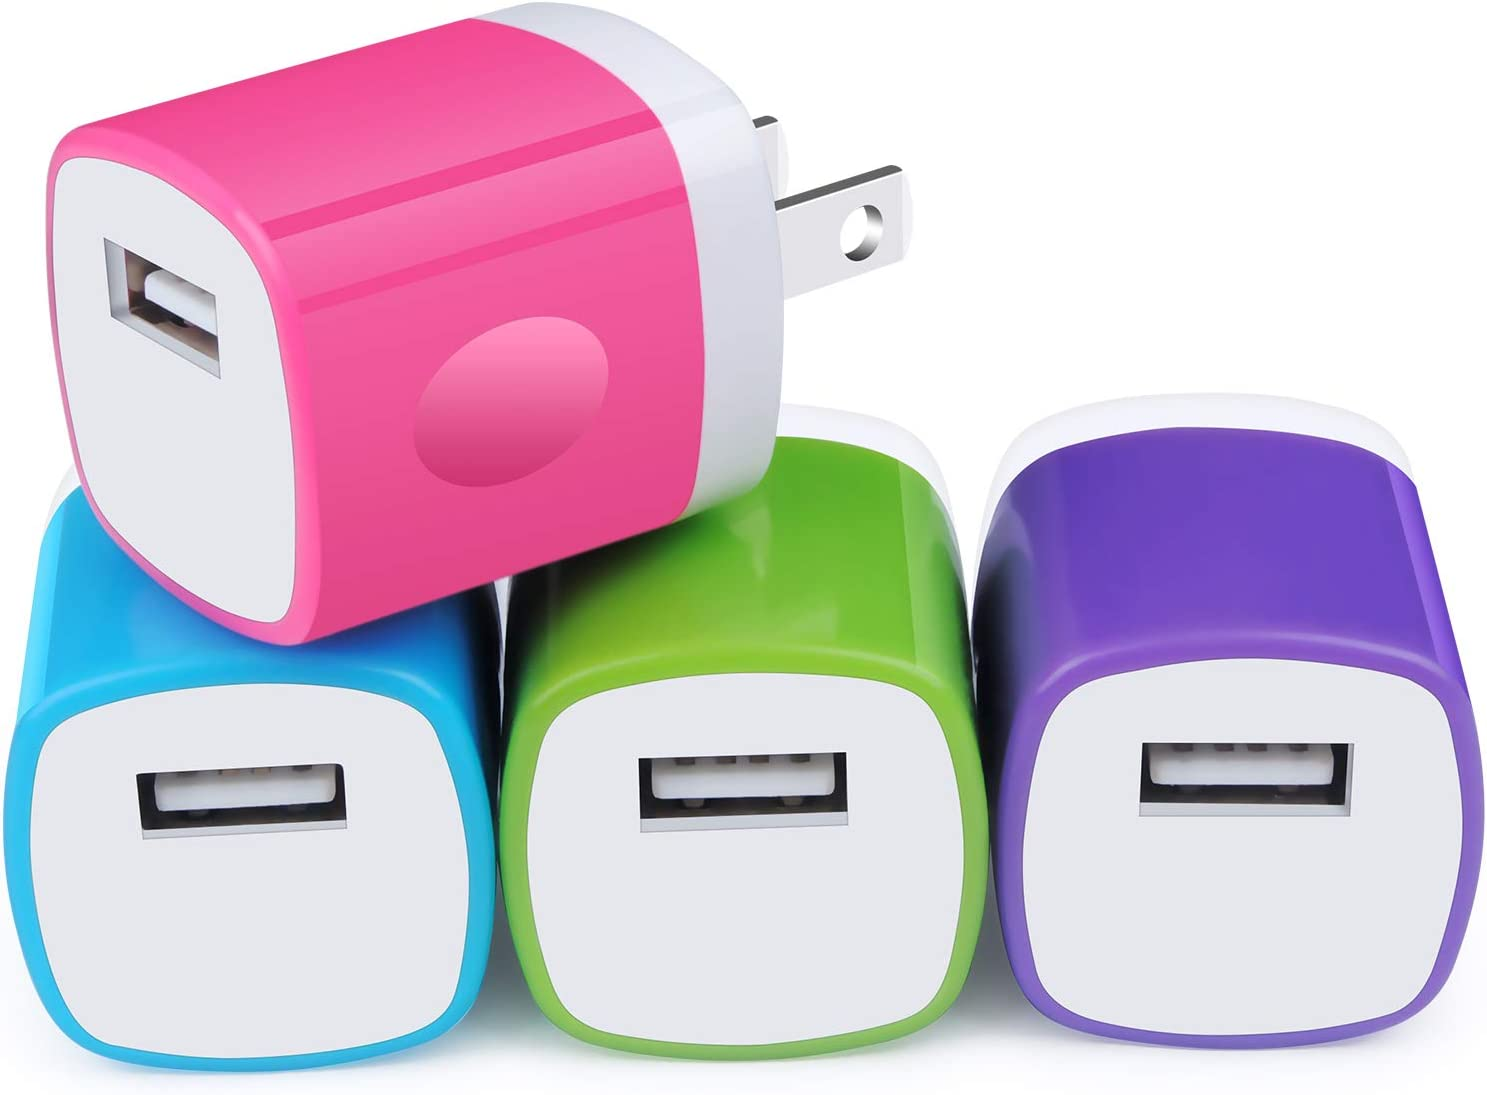 USB Block, Charger Plug for iPhone, Charging Cube, NonoUV 4Pack 1Amp Single Port USB Wall Charger Adapter Power Bricks Box for for iPhone SE 11 Pro XR XS X 8 7 6 6s Plus, iPad, Samsung Galaxy S20 S10